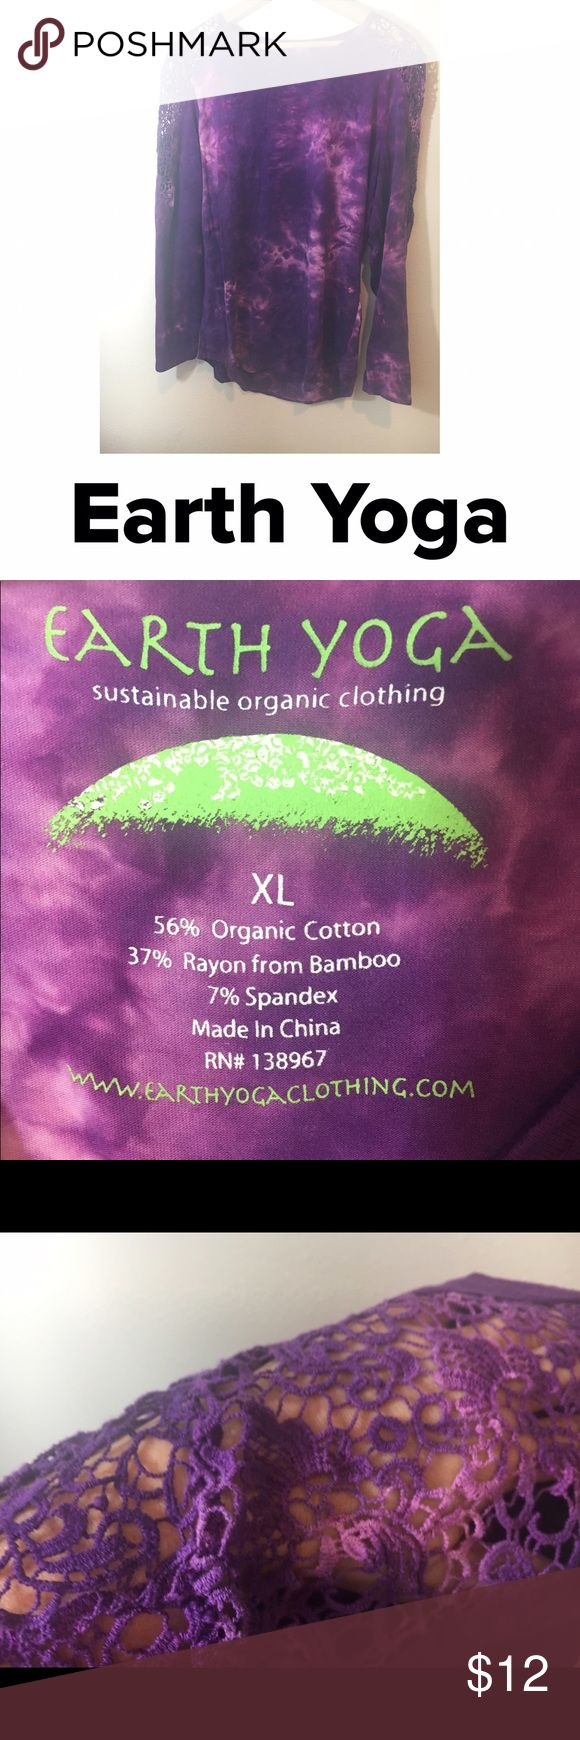 """Earth Yoga Purple Long Sleeve Top with Lace Detail Purple Tie dye long sleeved yoga top by Earth Yoga. Features crochet lace details on the shoulders. Women's XL, bust: 38"""", length 28"""". 56% organic cotton, 47% Rayon from bamboo, 7% spandex Earth Yoga Tops Tees - Long Sleeve"""